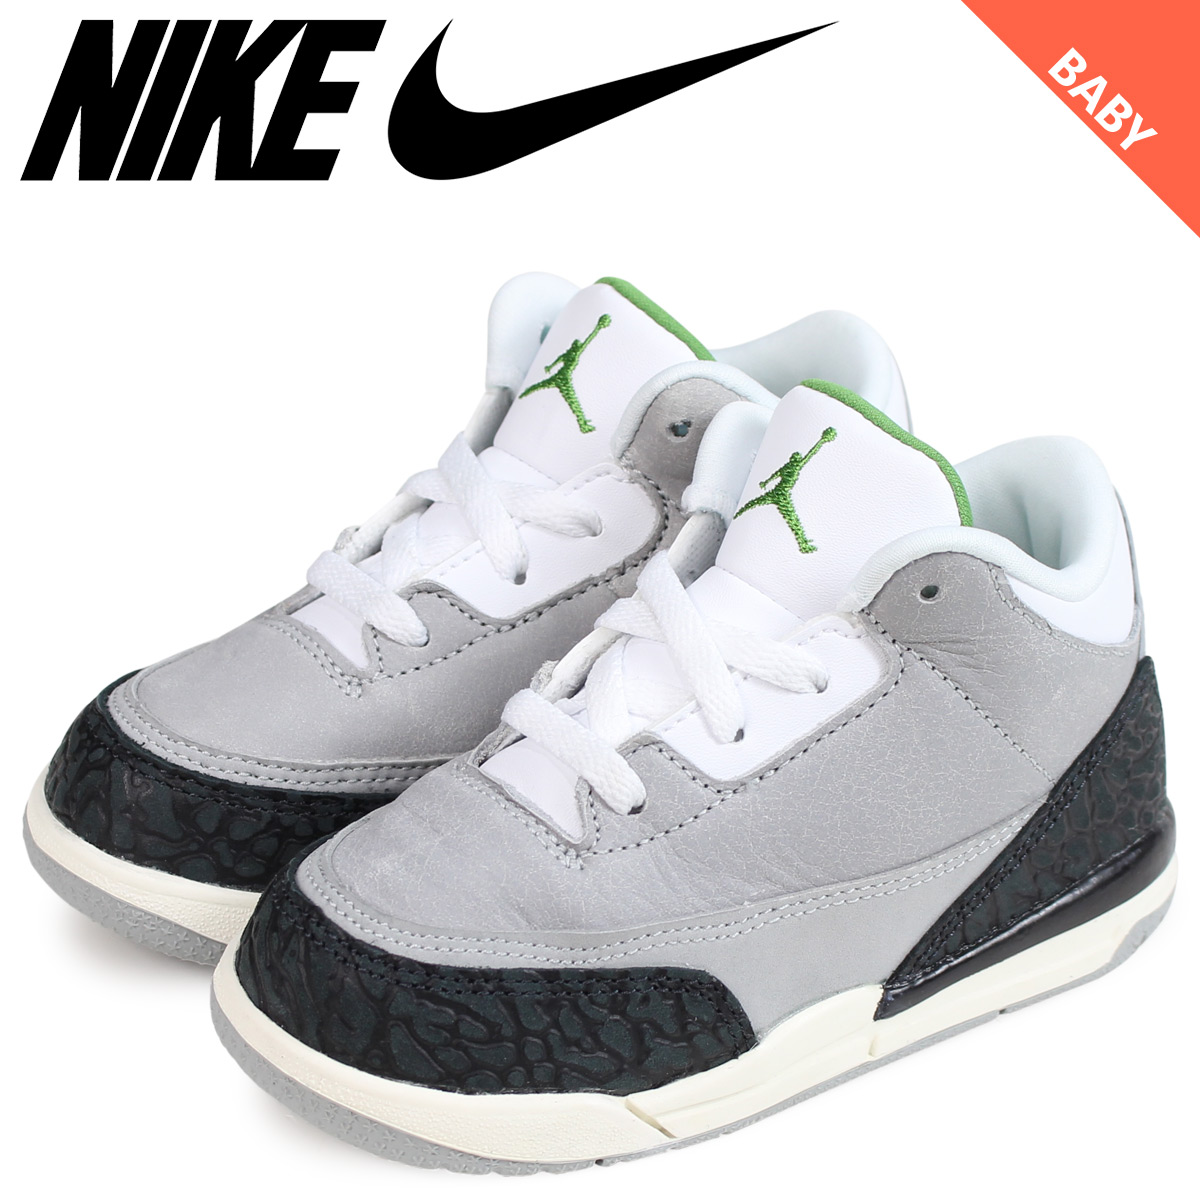 1a317e8f2ffe75  brand NIKE getting high popularity from sneakers freak . Signature model  third